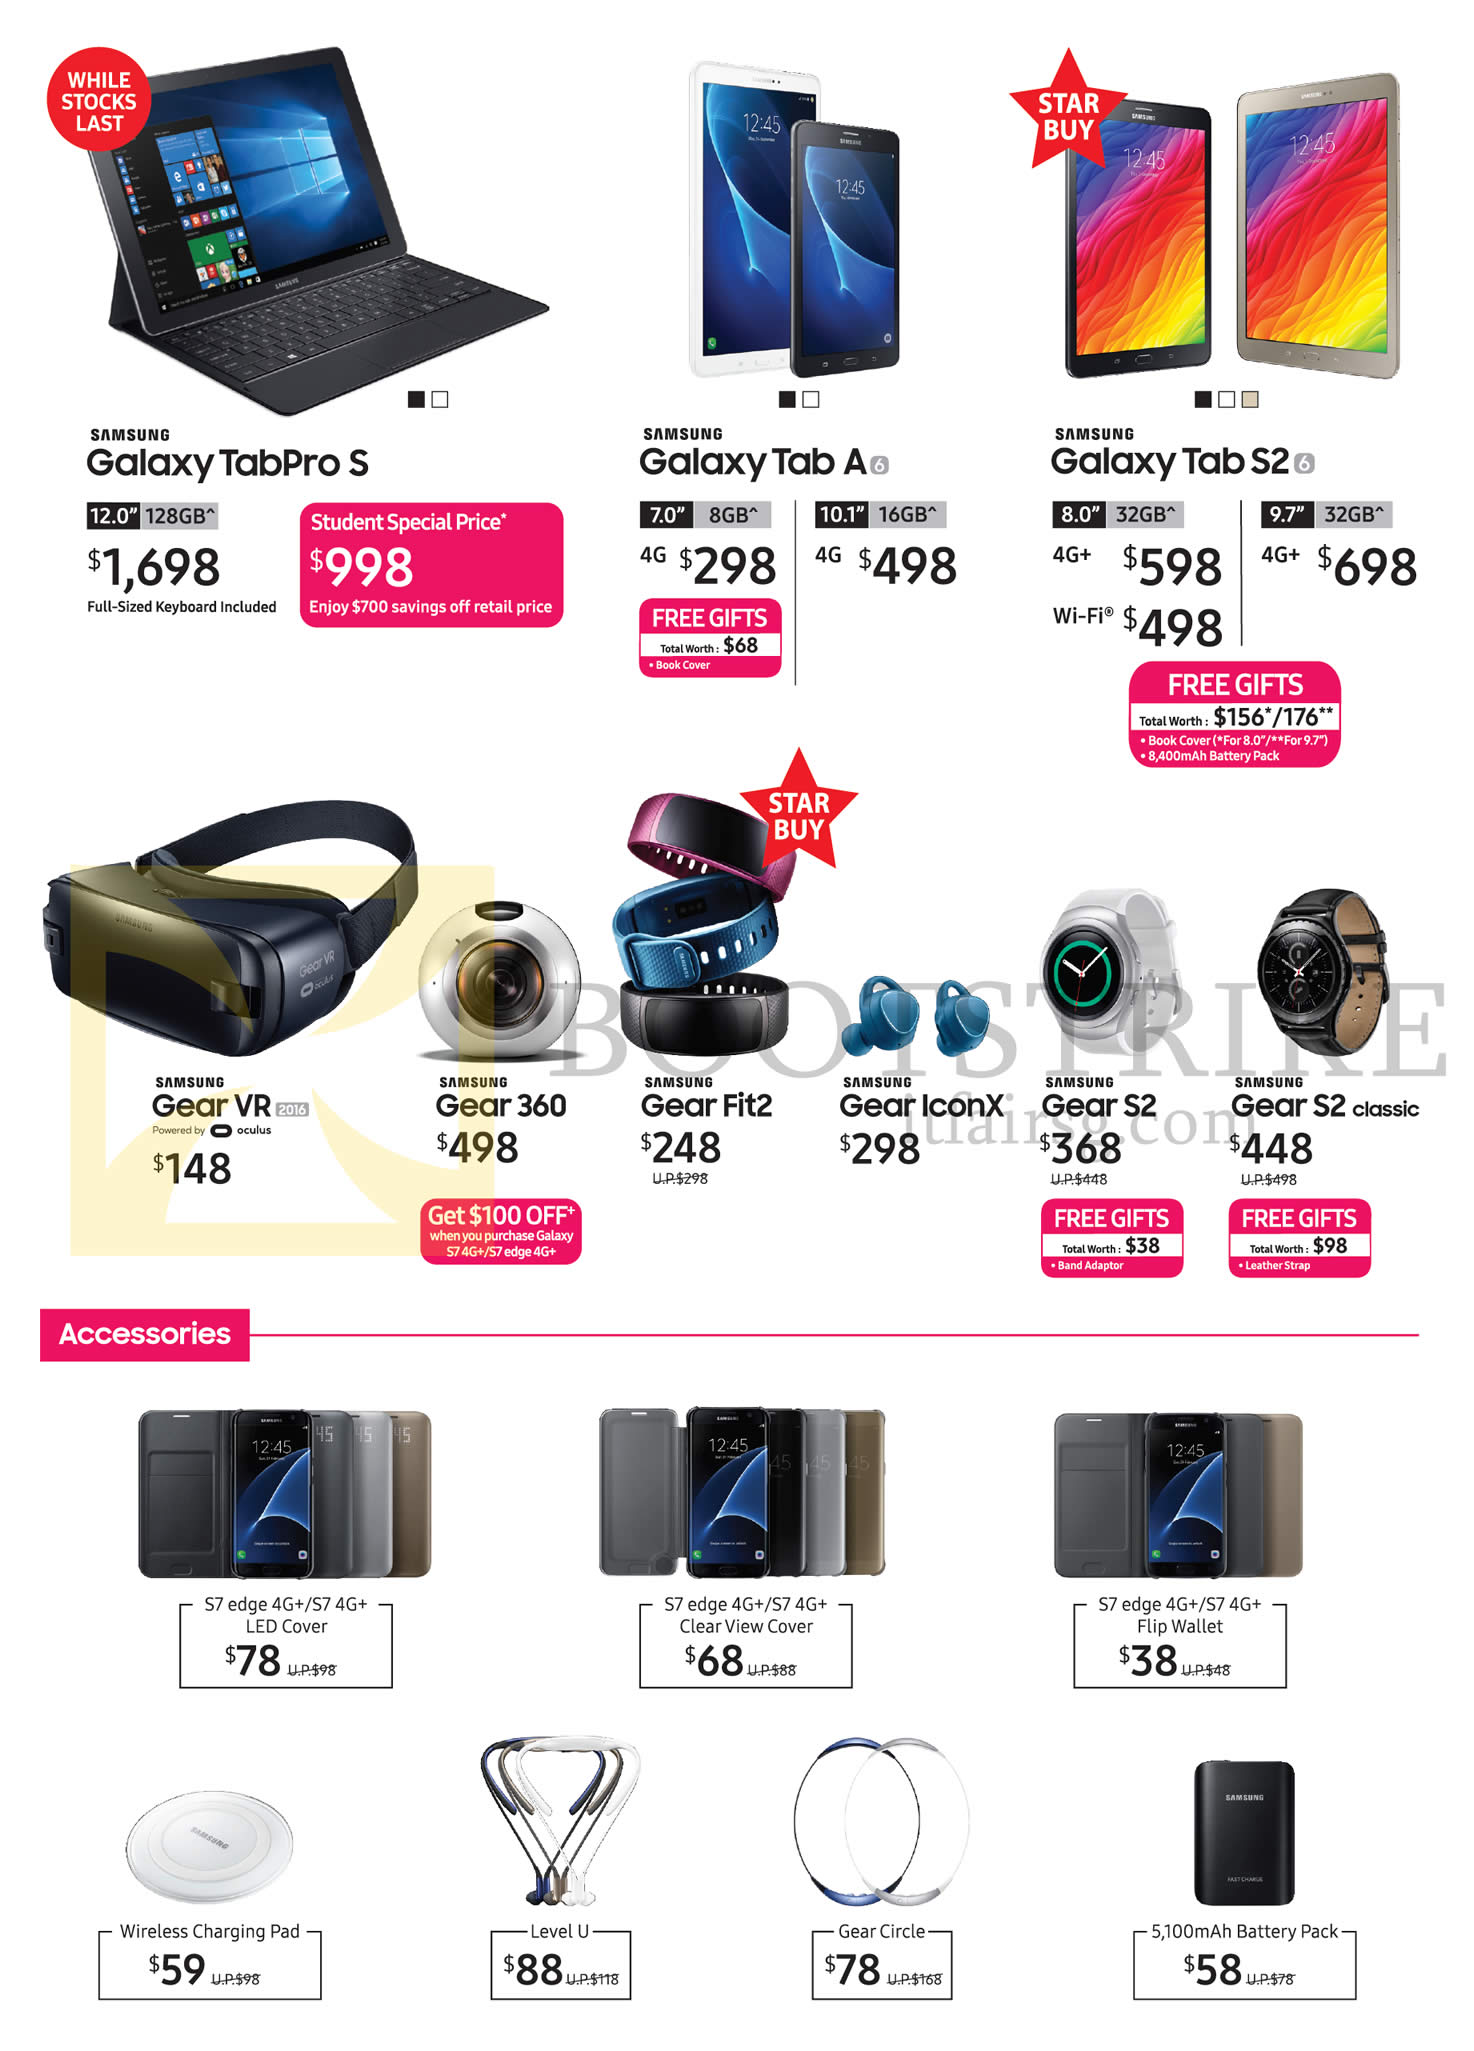 COMEX 2016 price list image brochure of Samsung Tablets, Mobile SmartPhones, Accessories, Galaxy TabPro S, Tab A, S2, Gear VR, 360, Fit2, IconX, S2, S2 Classic, S7 Edge Wallet, Charging Pod, Gear Circle, Battery